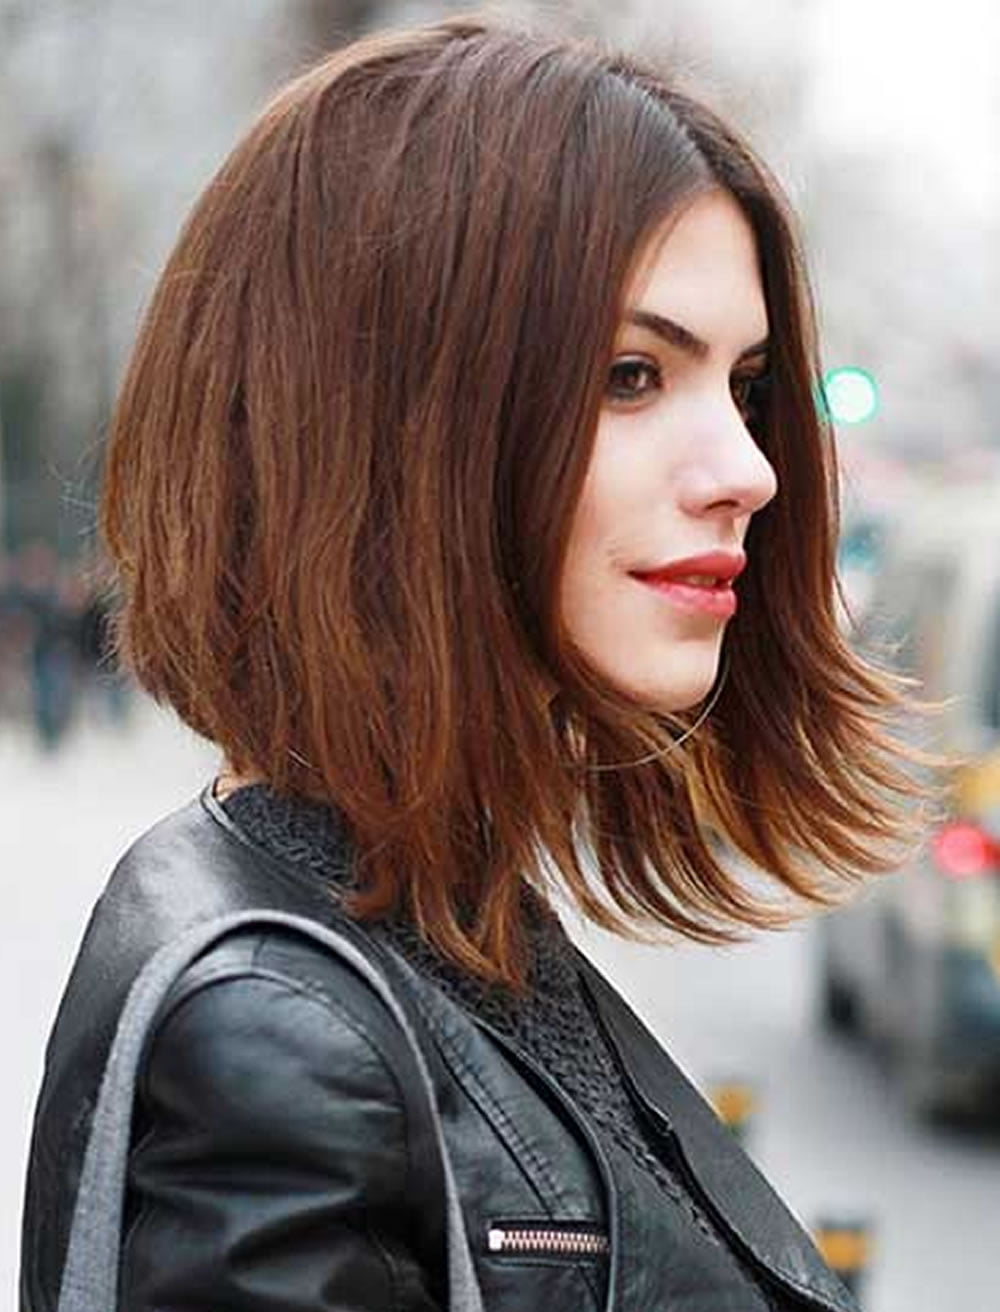 Medium Sleek Bob. Sleek Bob is a new cut in the fashion industry and to be in the top notch in the game wear the sleek Bob in medium length. This bob is trendy and fashionable for women .